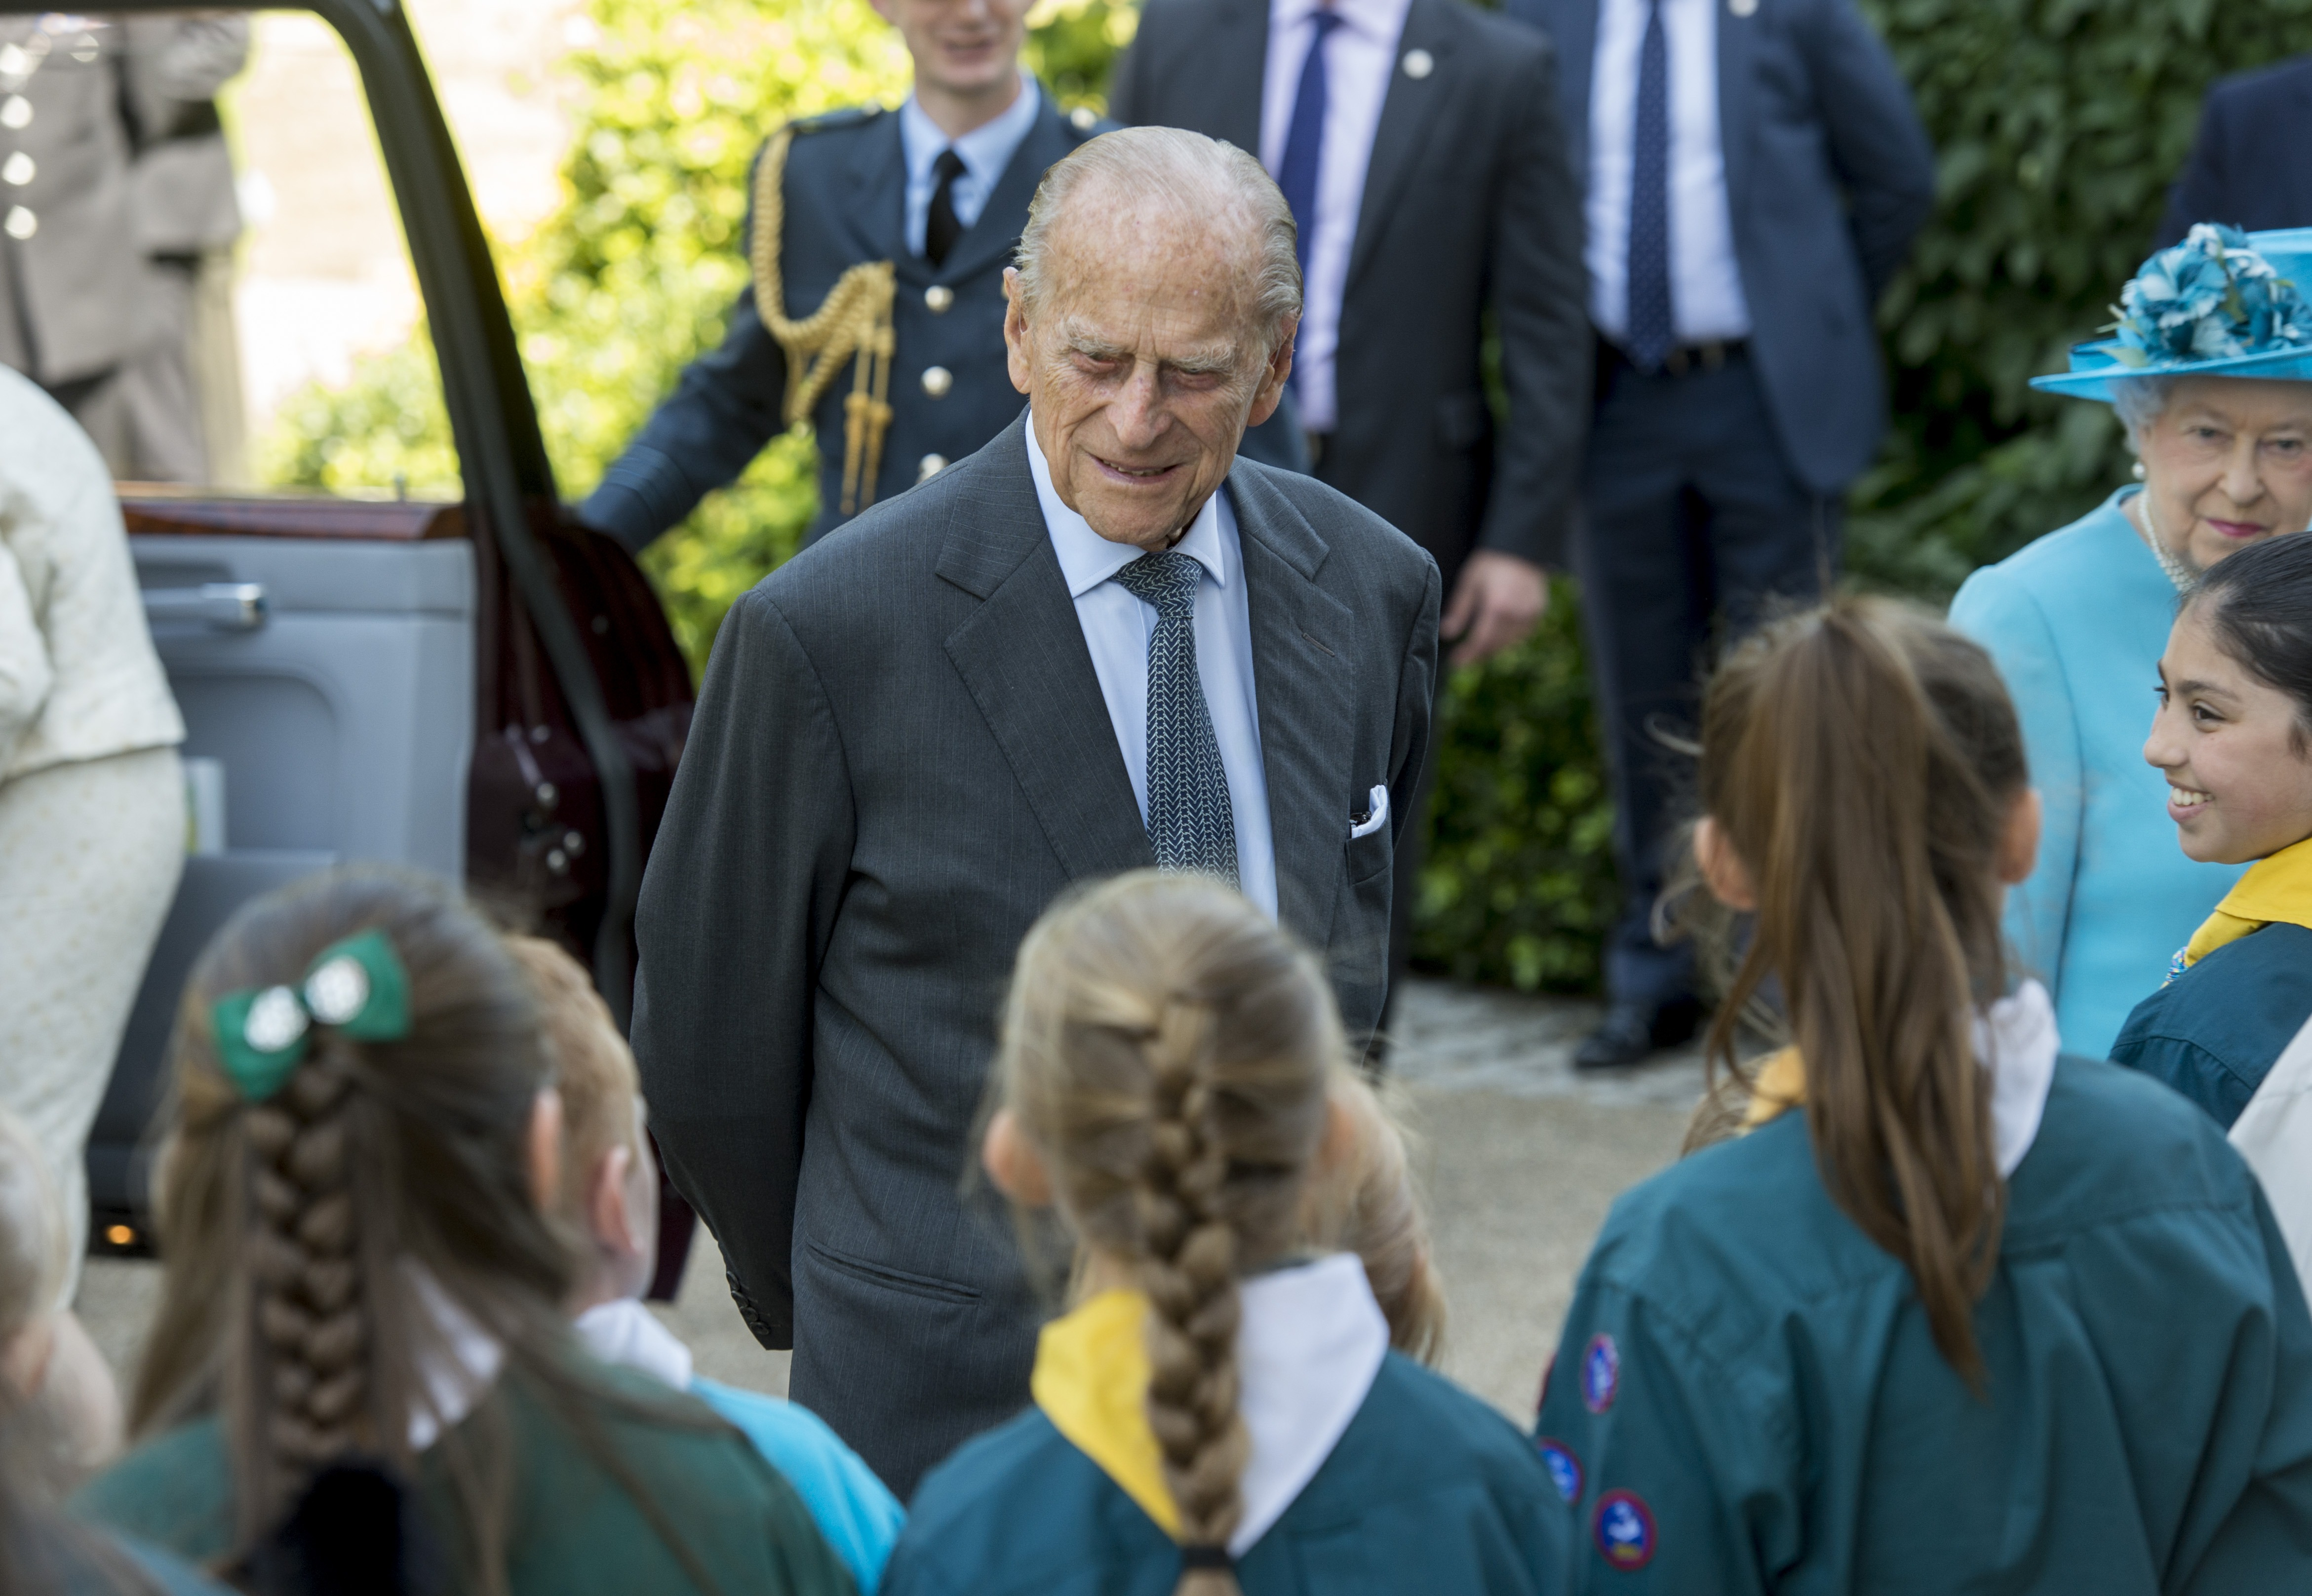 Queen's elderly husband Prince Philip in London hospital | THV11.com